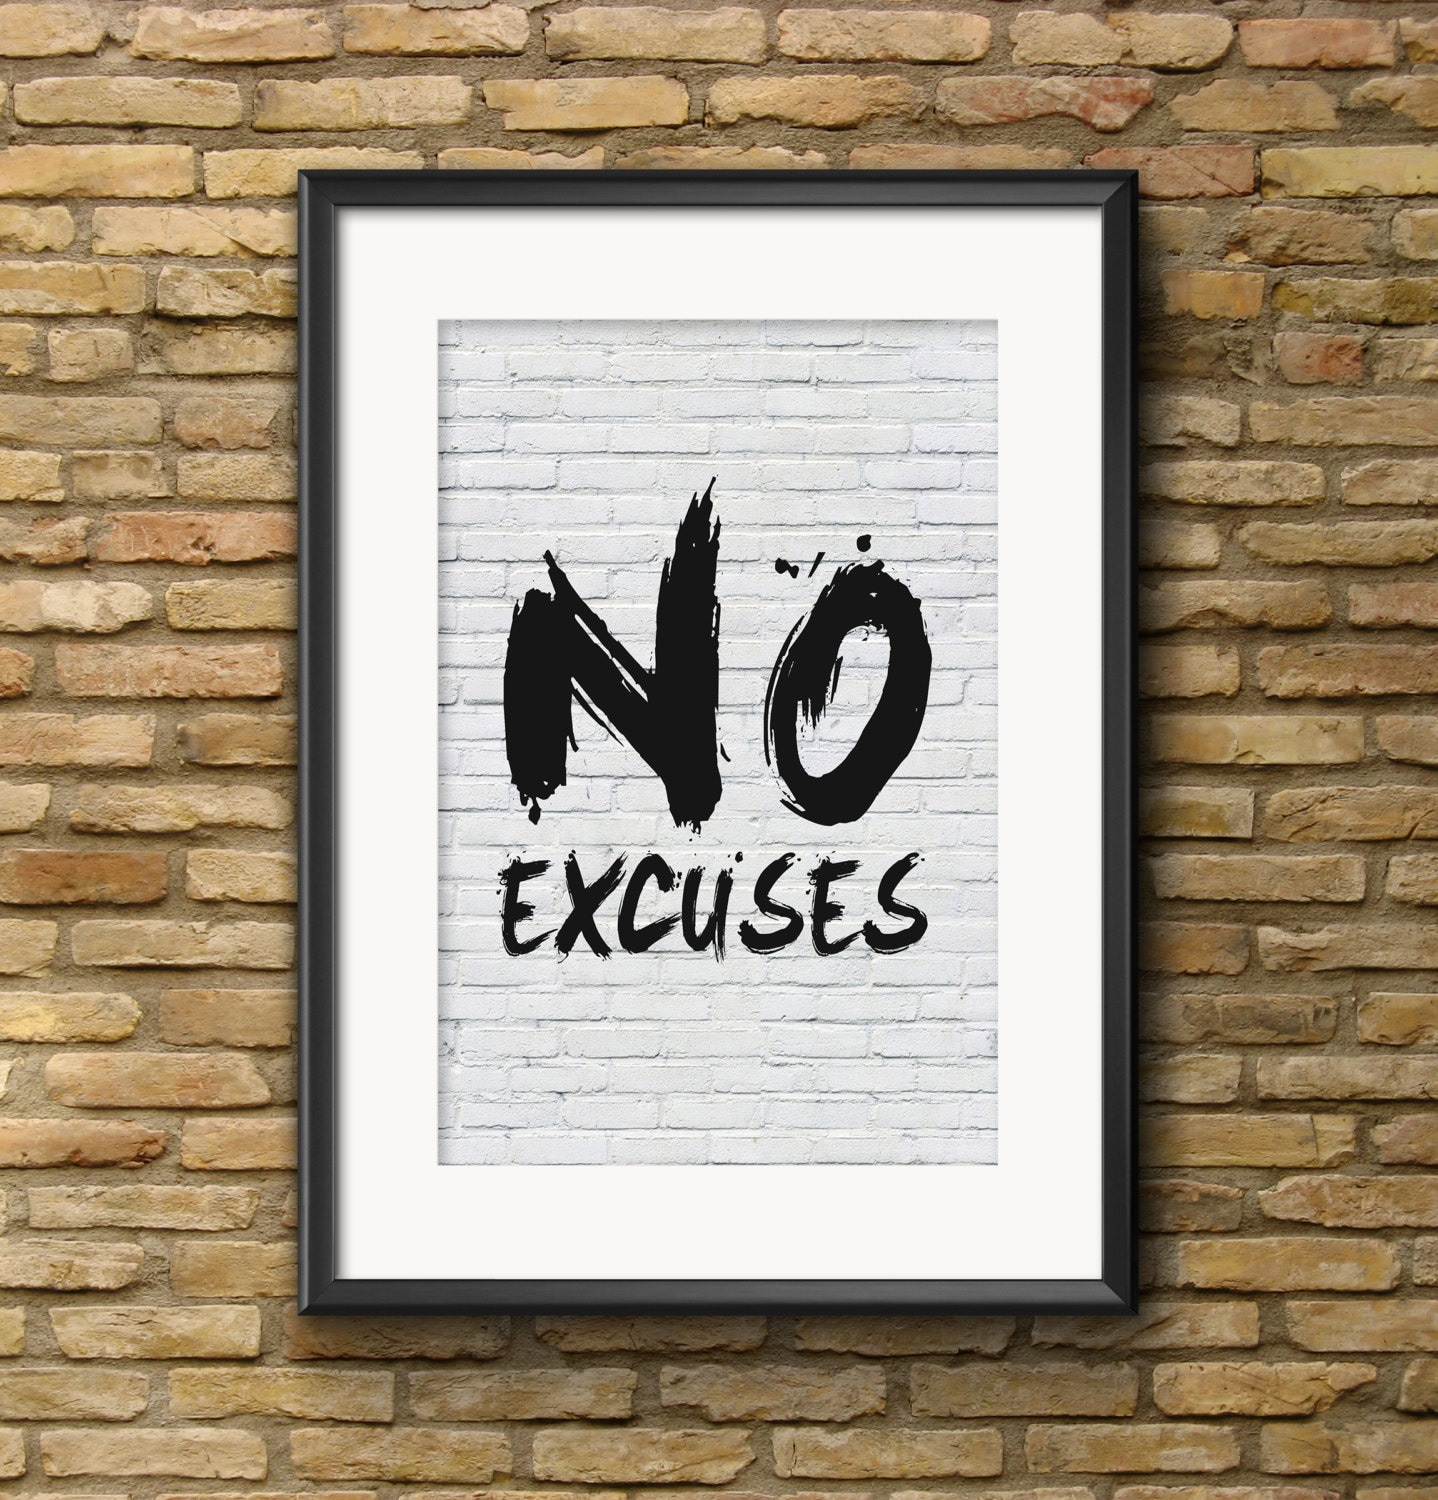 Wall Art Decor Inspirational : No excuses printable wall art motivational